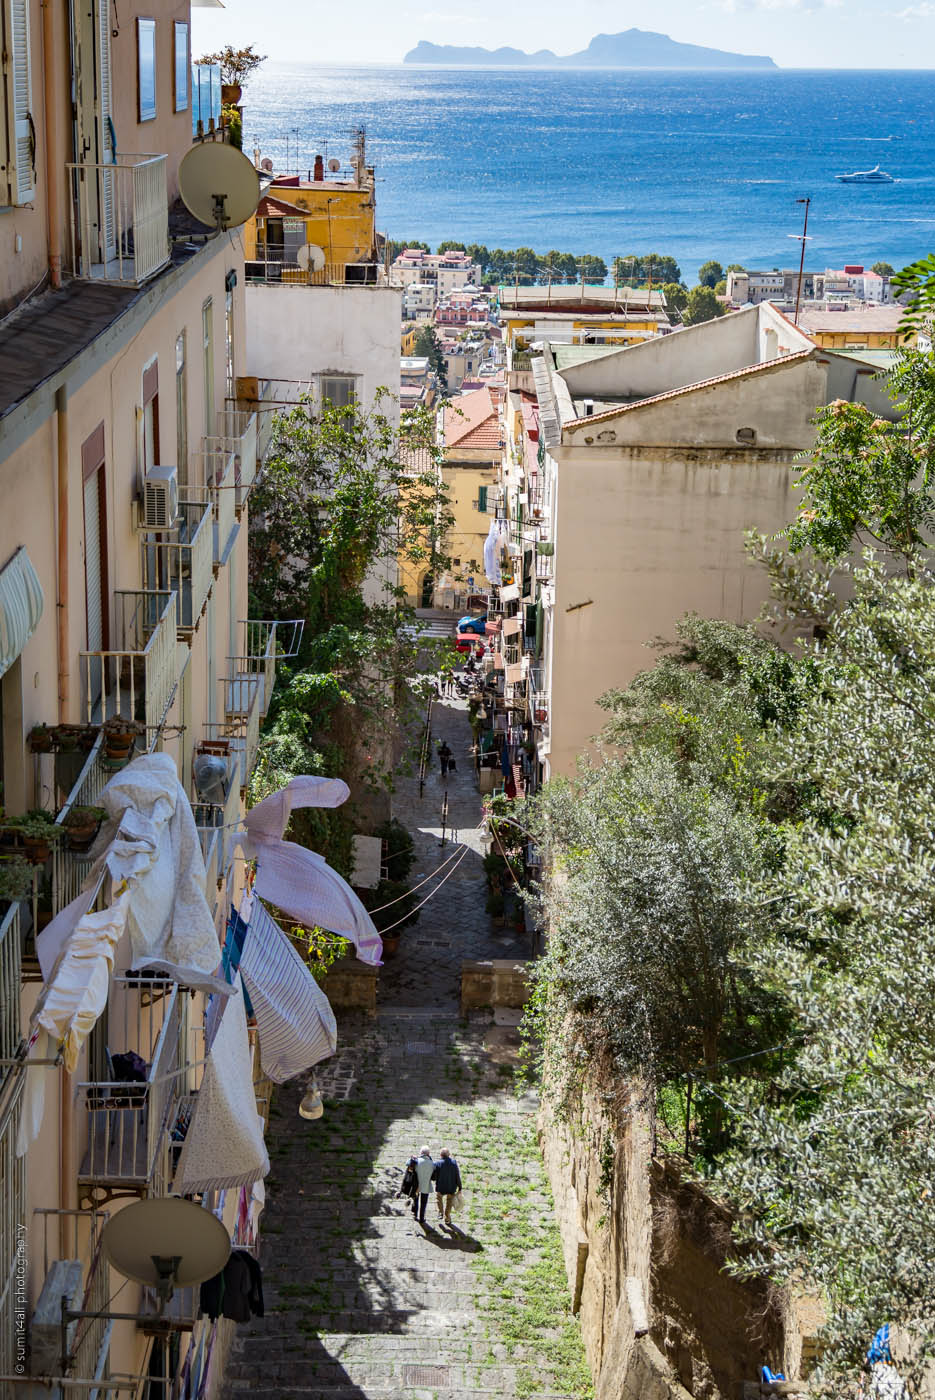 A hilly street sloping down in Naples and the Isle of Capri in the Background